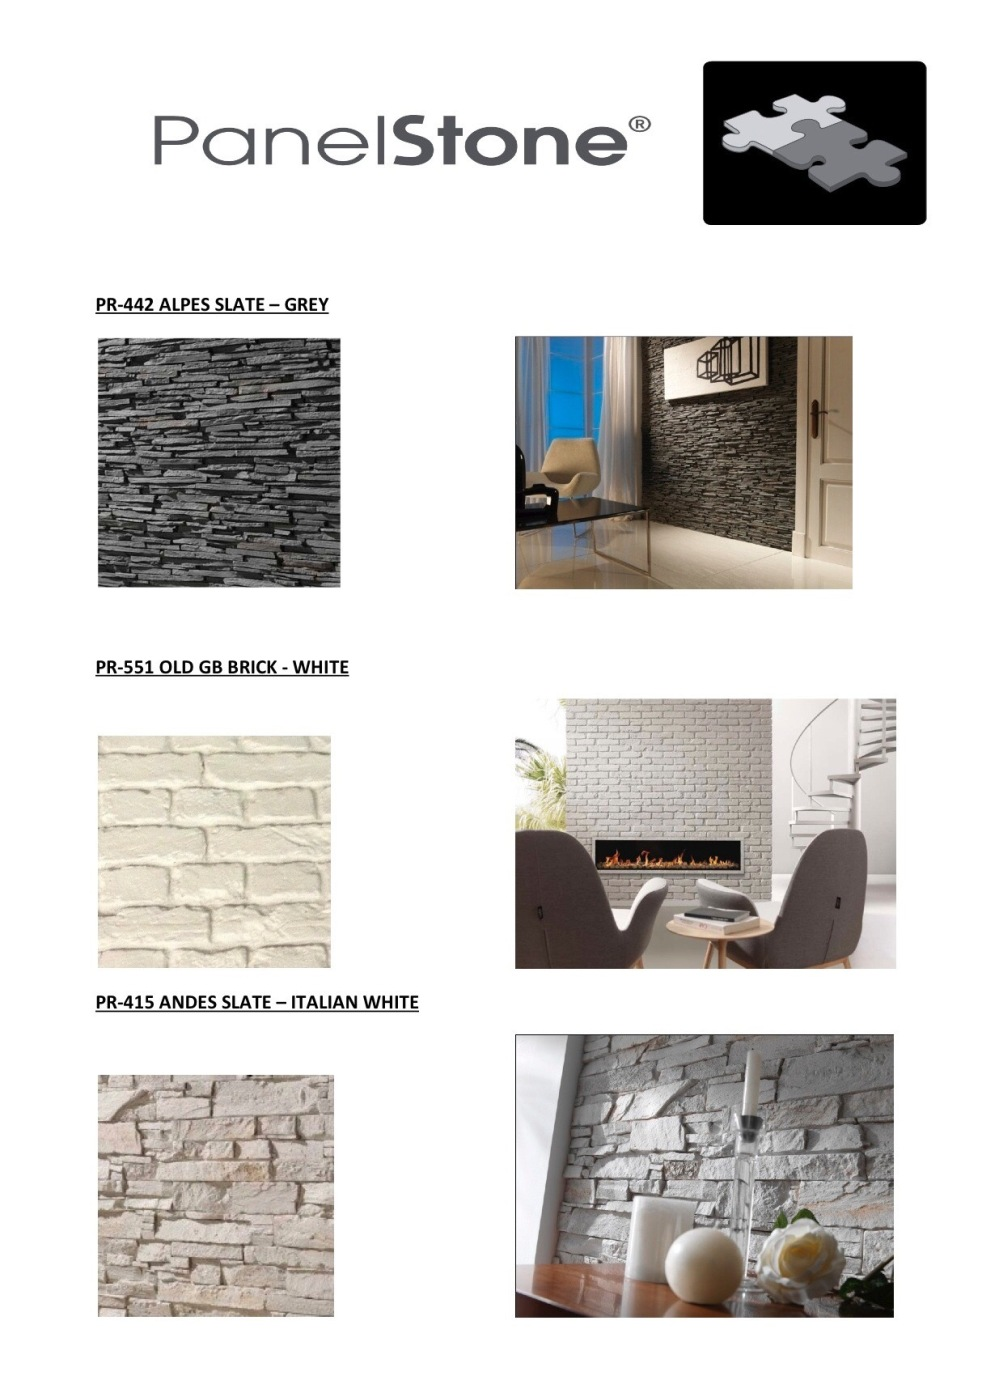 UK Stock of Dreamwall - Panel Stone panels